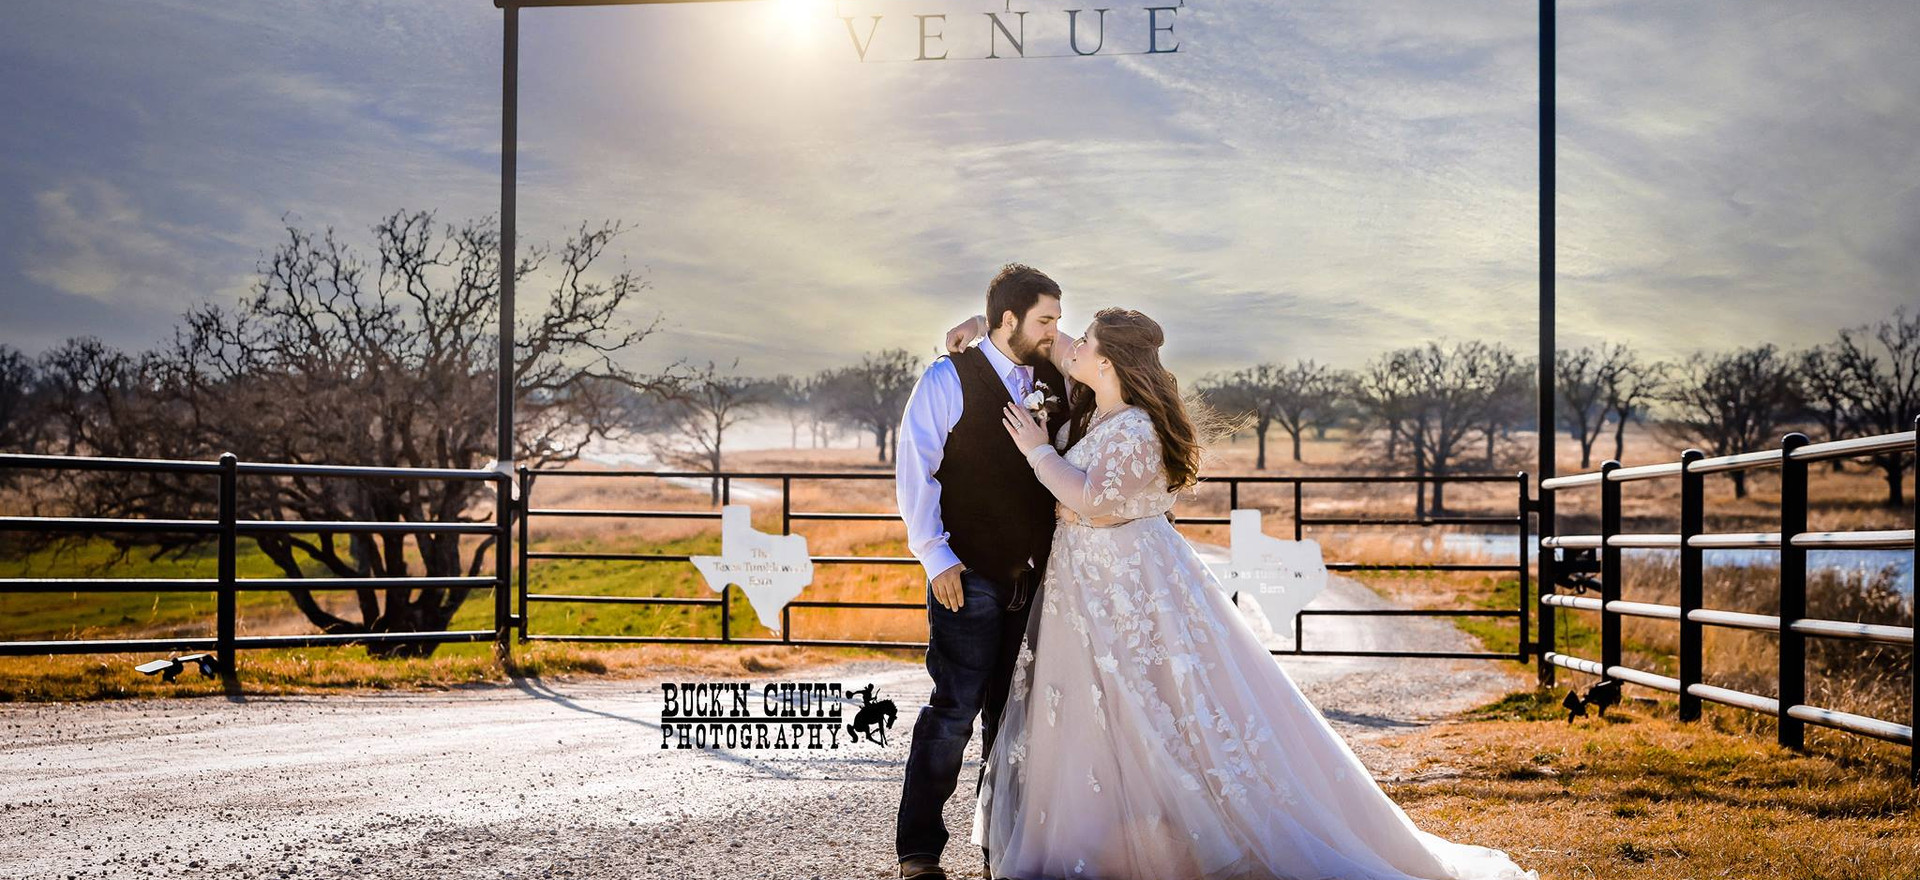 Beautiful Ranch weddings